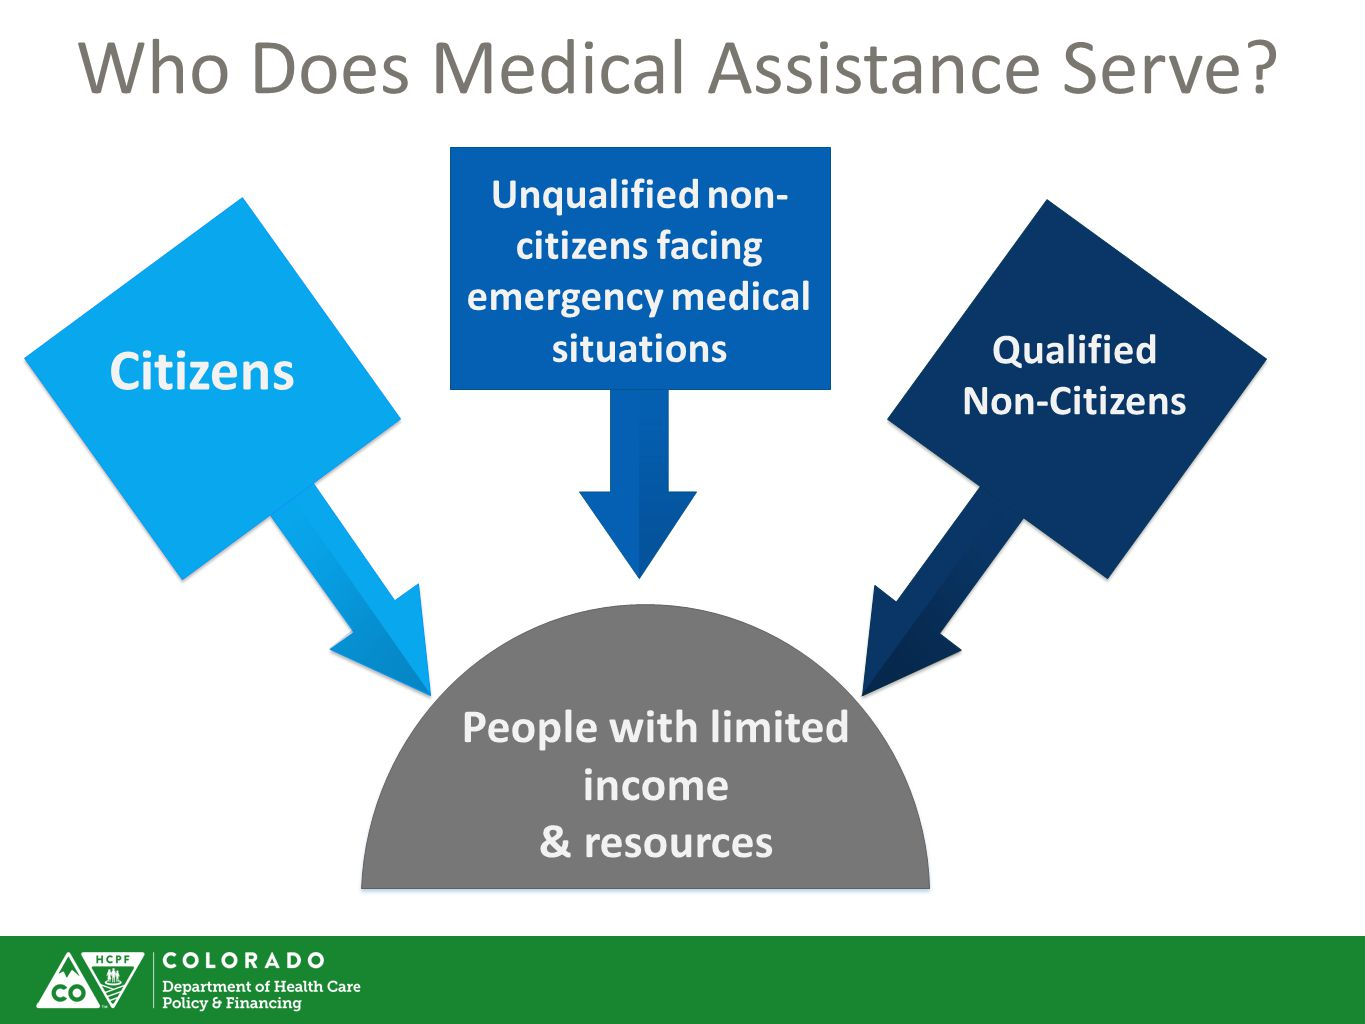 Who Does Medical Assistance Serve